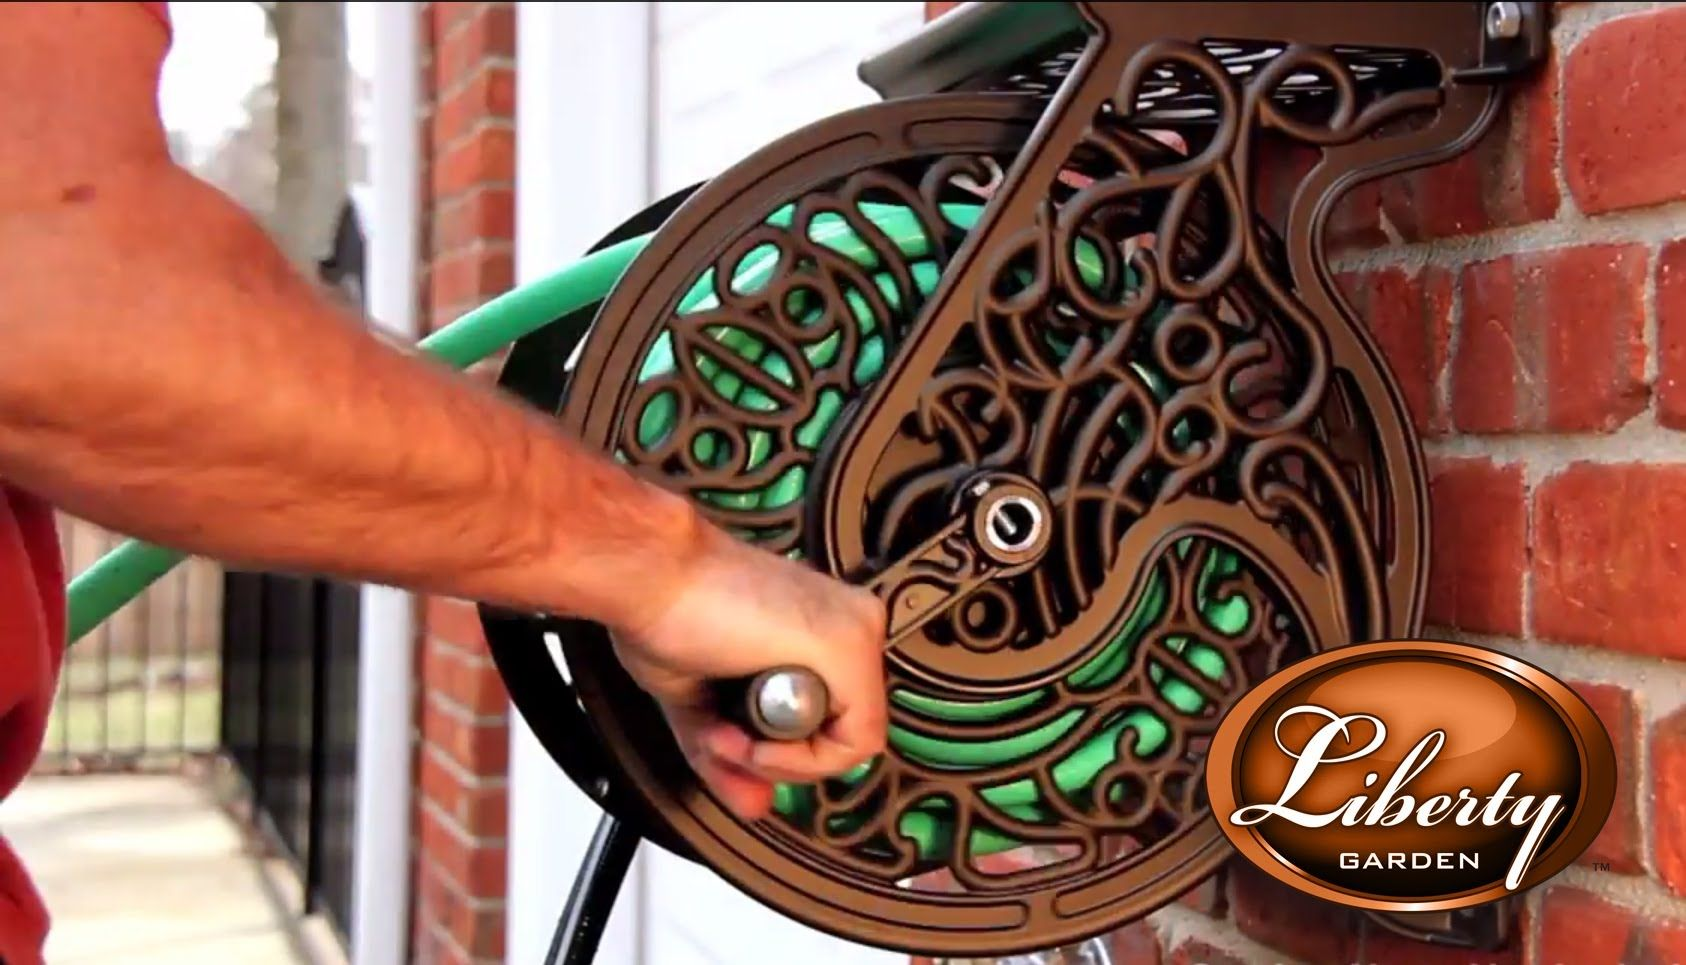 Charmant Liberty Garden Wall Mounted Hose Reels Are Elegant In Design And  Functionality. Watch The Video And See For Yourself!